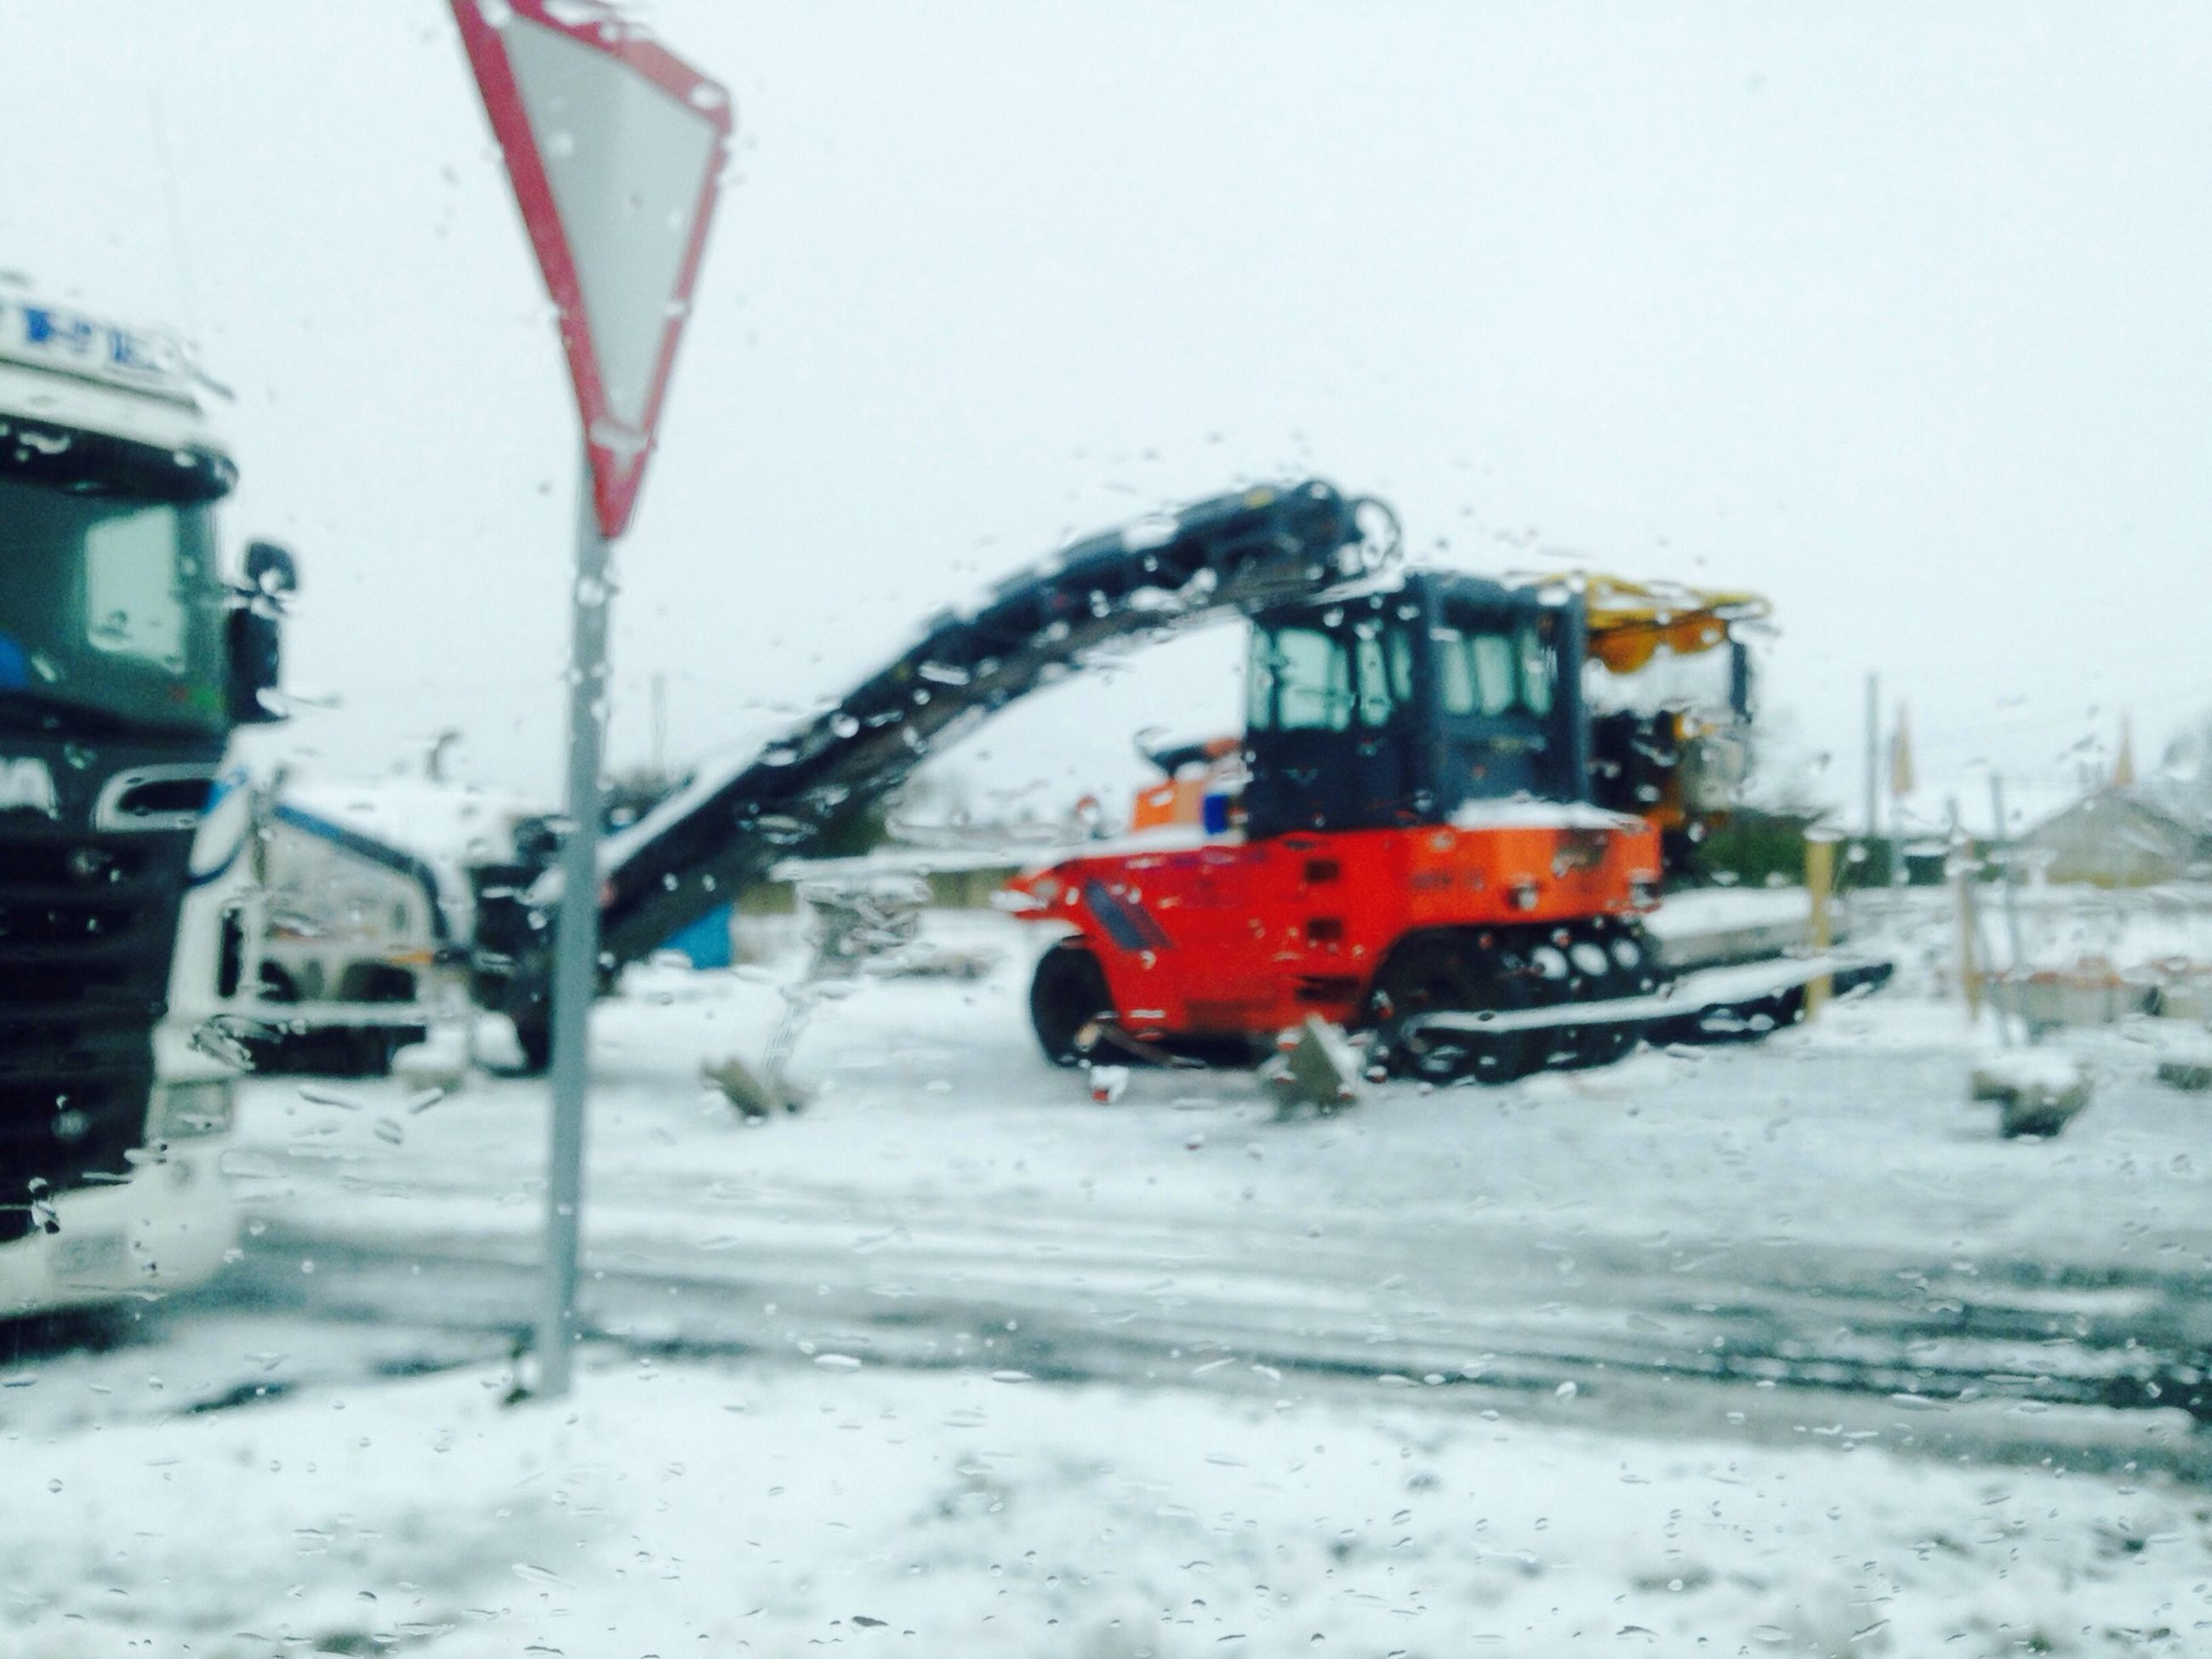 snow, winter, cold temperature, season, weather, transportation, mode of transport, land vehicle, covering, car, frozen, covered, public transportation, white color, building exterior, road, train - vehicle, built structure, architecture, snowing